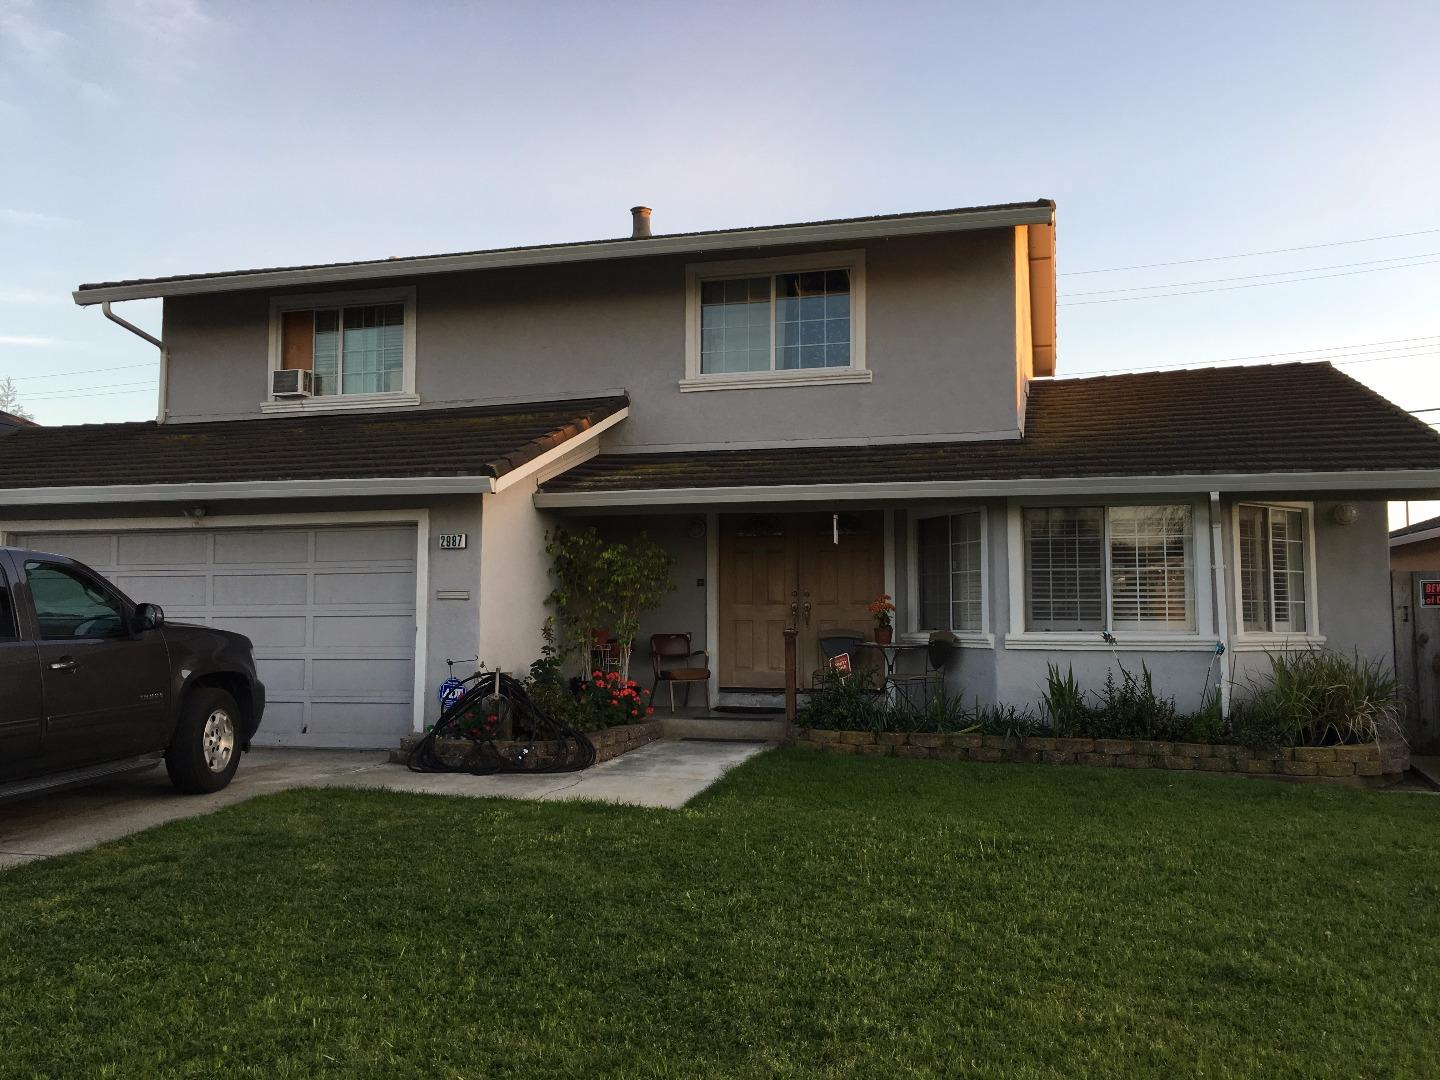 Additional photo for property listing at 2987 Fairfax  San Jose, カリフォルニア 95148 アメリカ合衆国